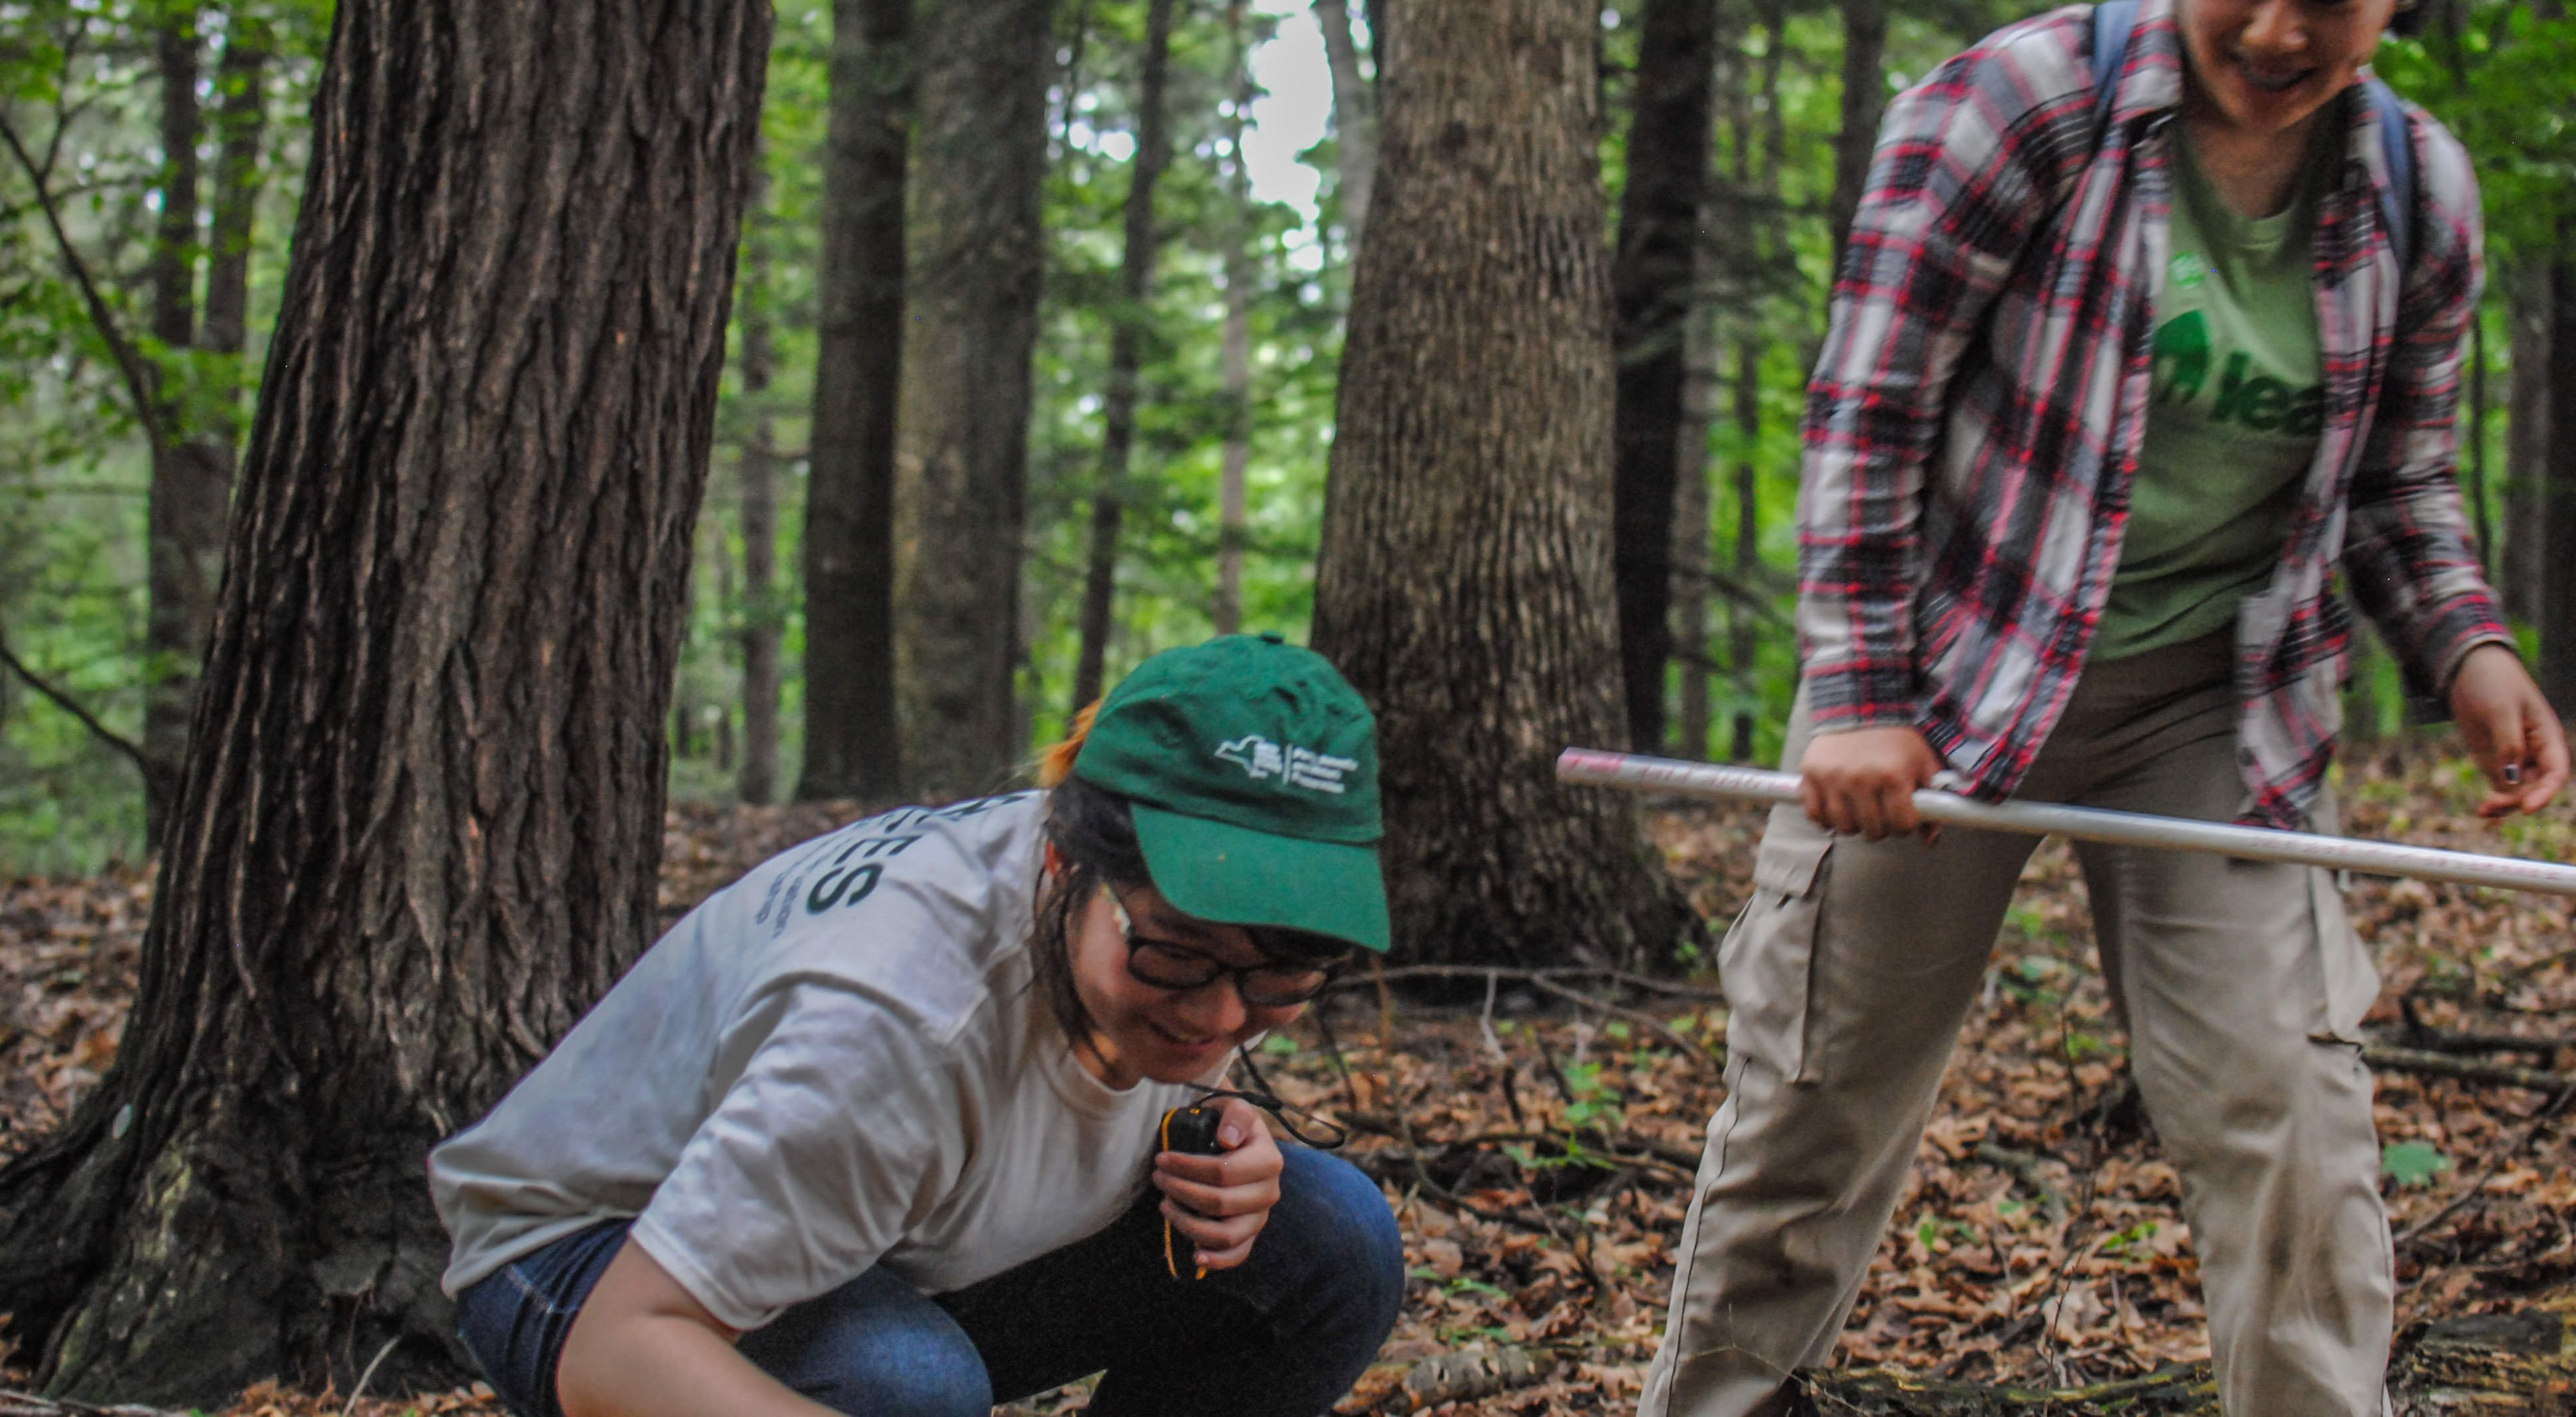 Two trail stewards collecting data on the forest floor.